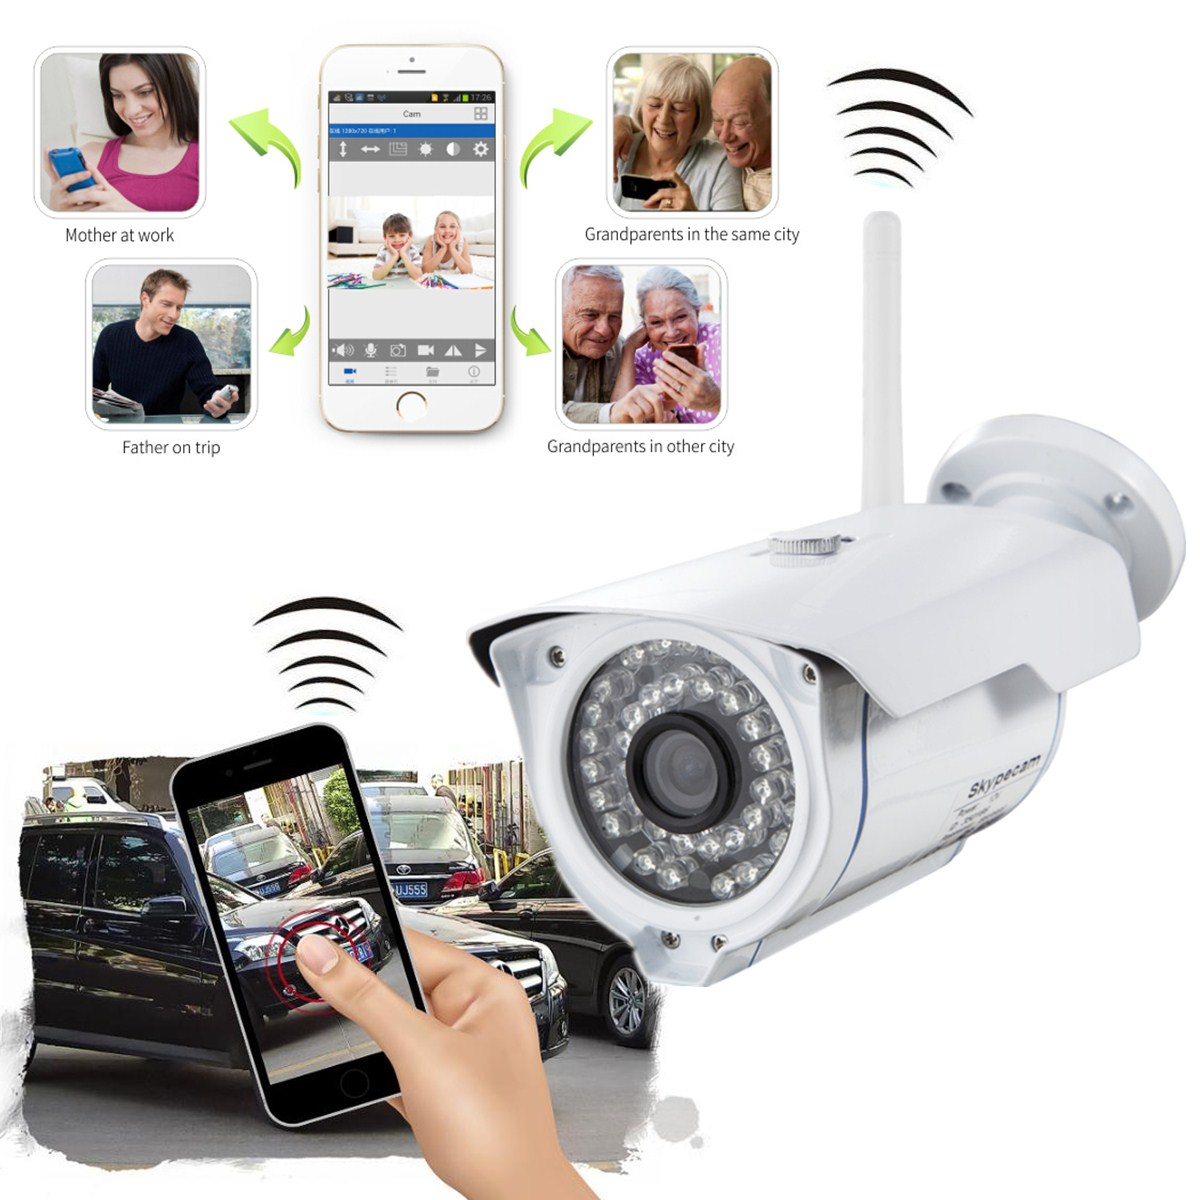 sricam outdoor hd 720p wifi wireless ip cctv network security camera megapixel us lazada malaysia. Black Bedroom Furniture Sets. Home Design Ideas